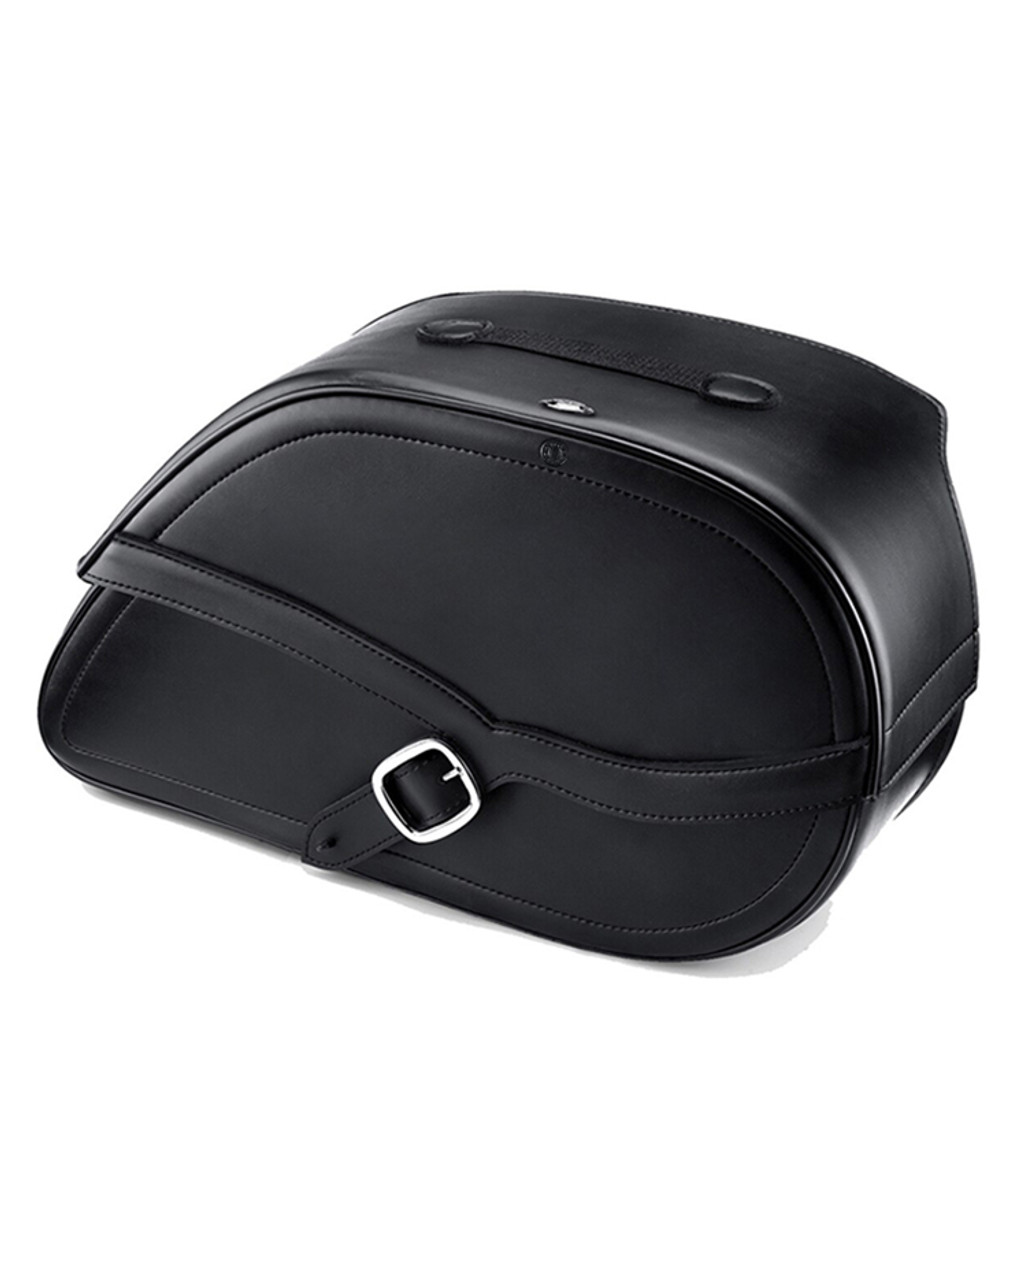 Viking Armor Shock Cutout Large Motorcycle Saddlebags For Harley Dyna Switchback Main Bag View